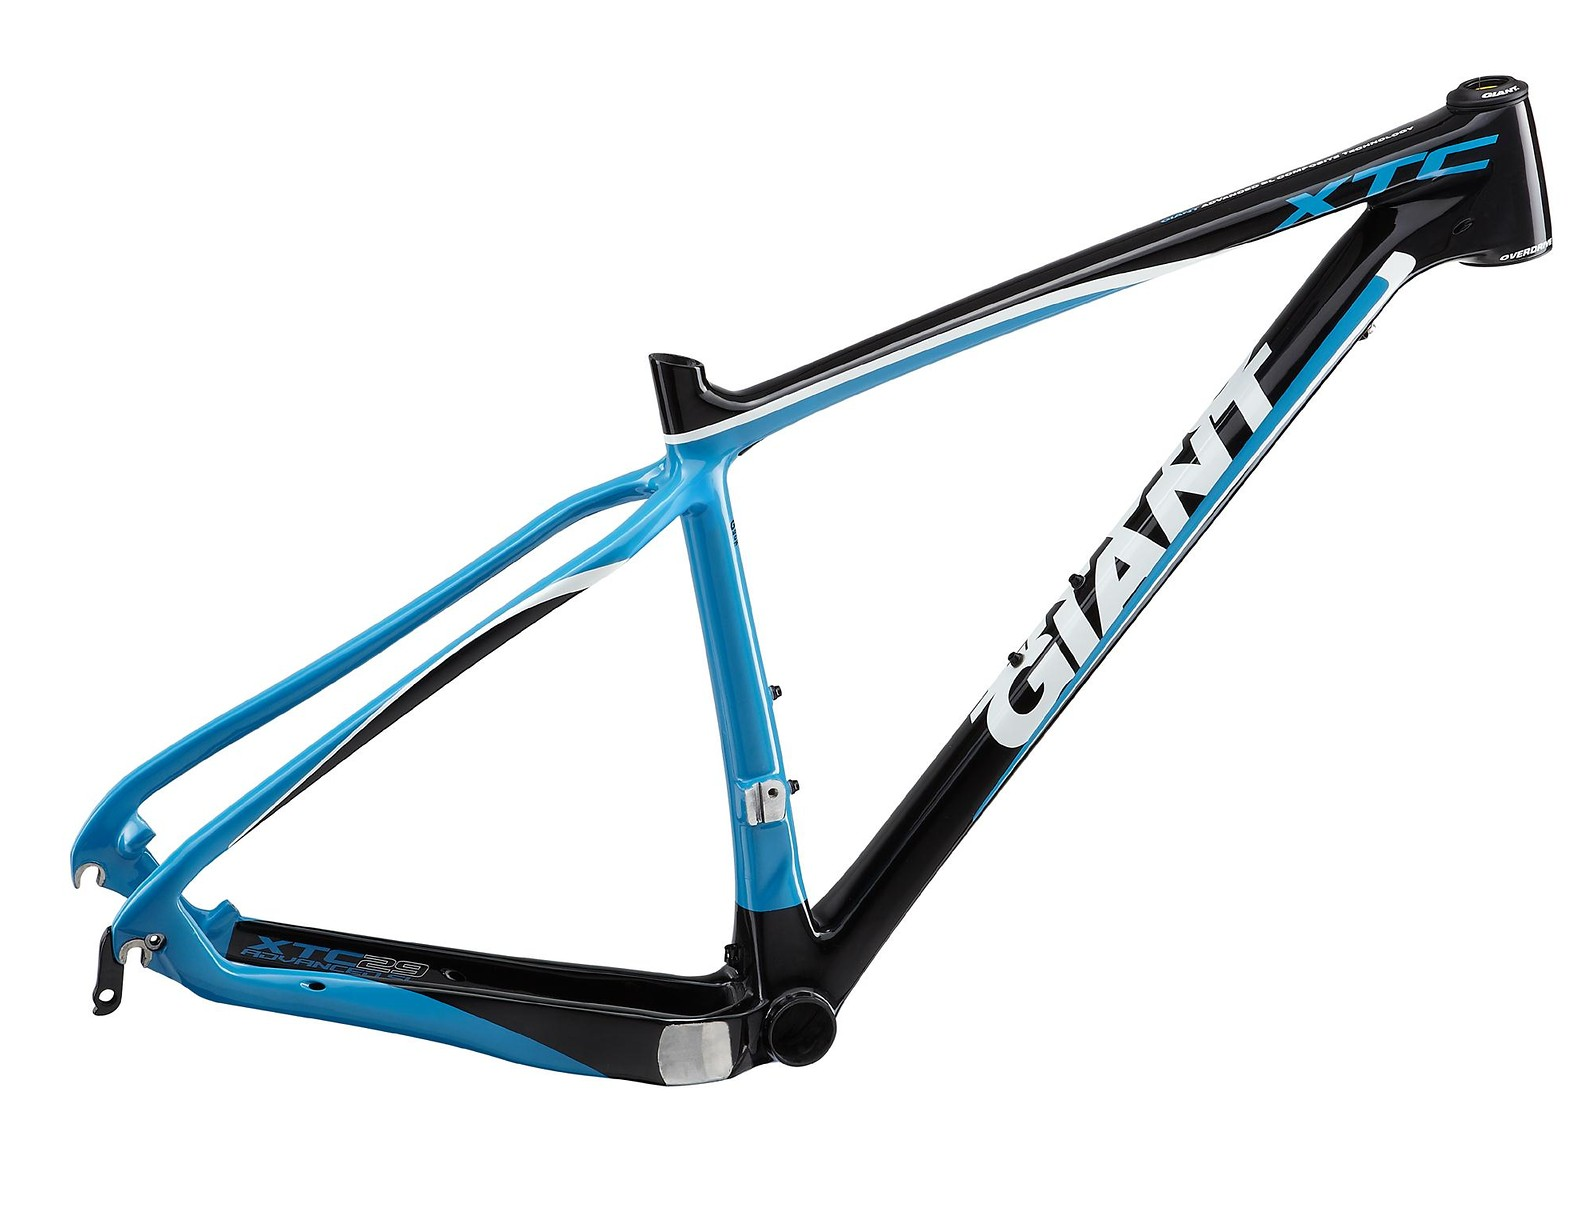 Giant XTC Advanced SL 29er Frame XTC Advanced SL 29er Frameset